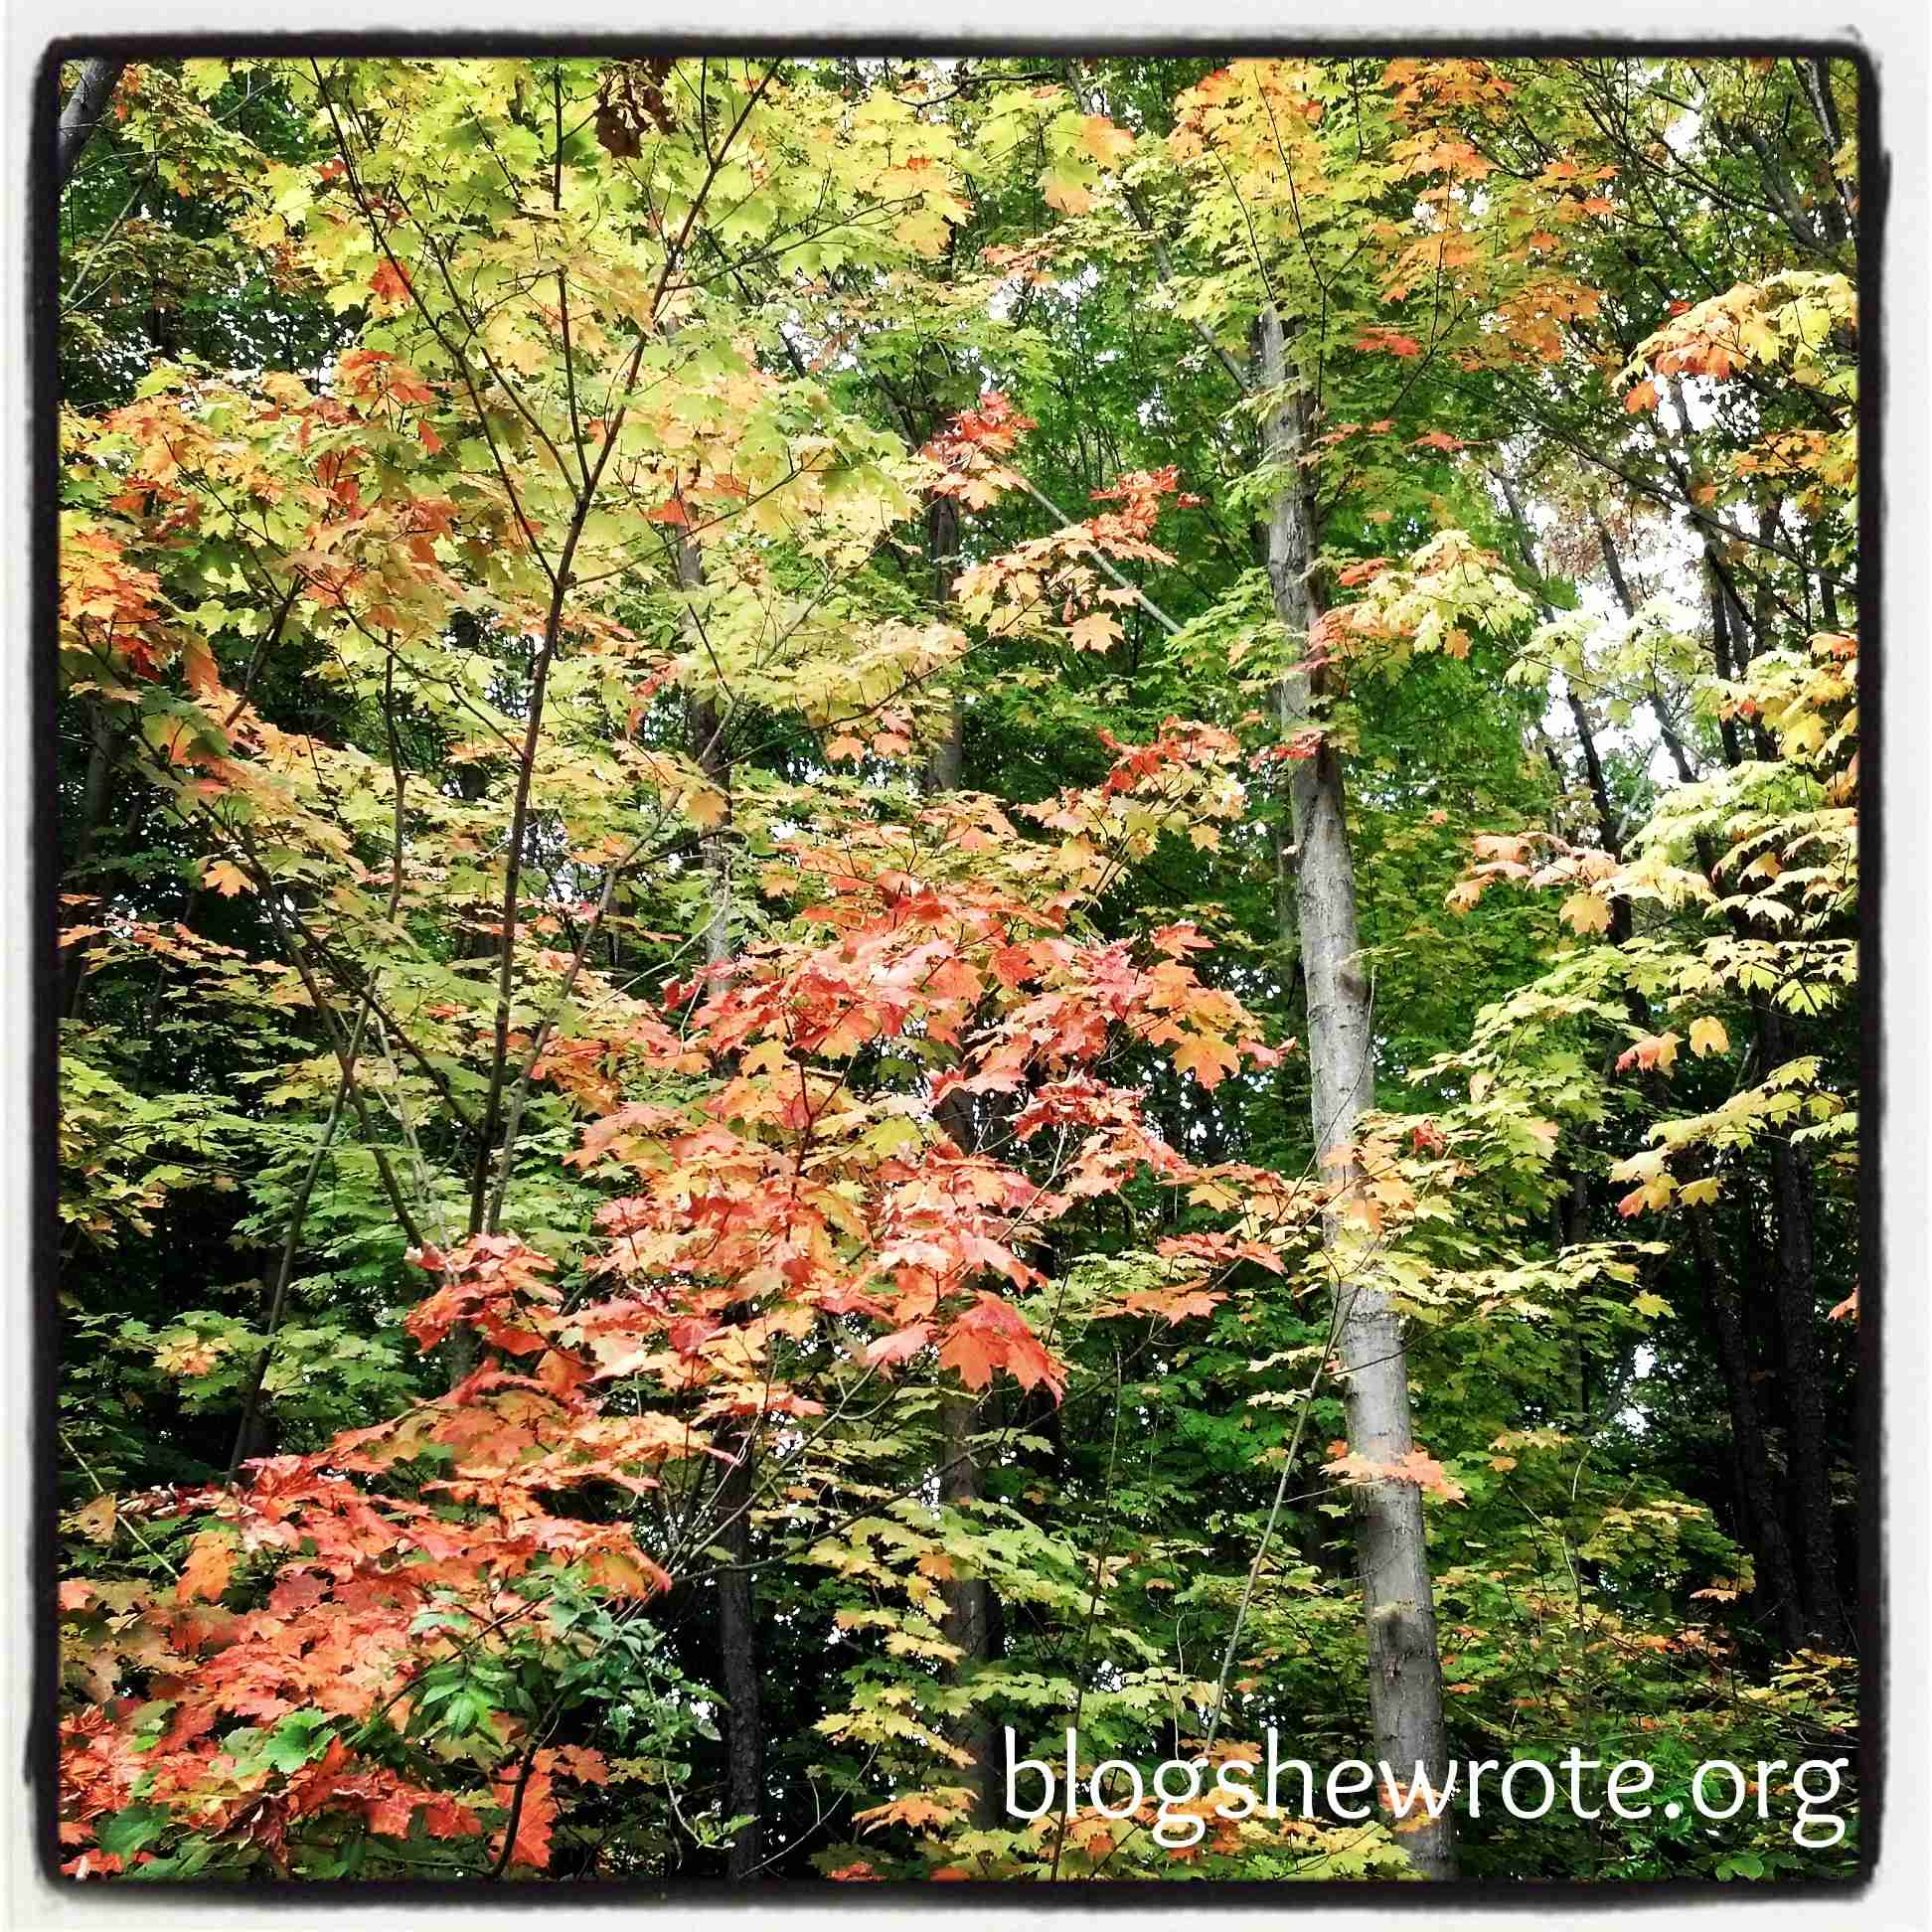 5 Ways to Have Fun with Falling Leaves